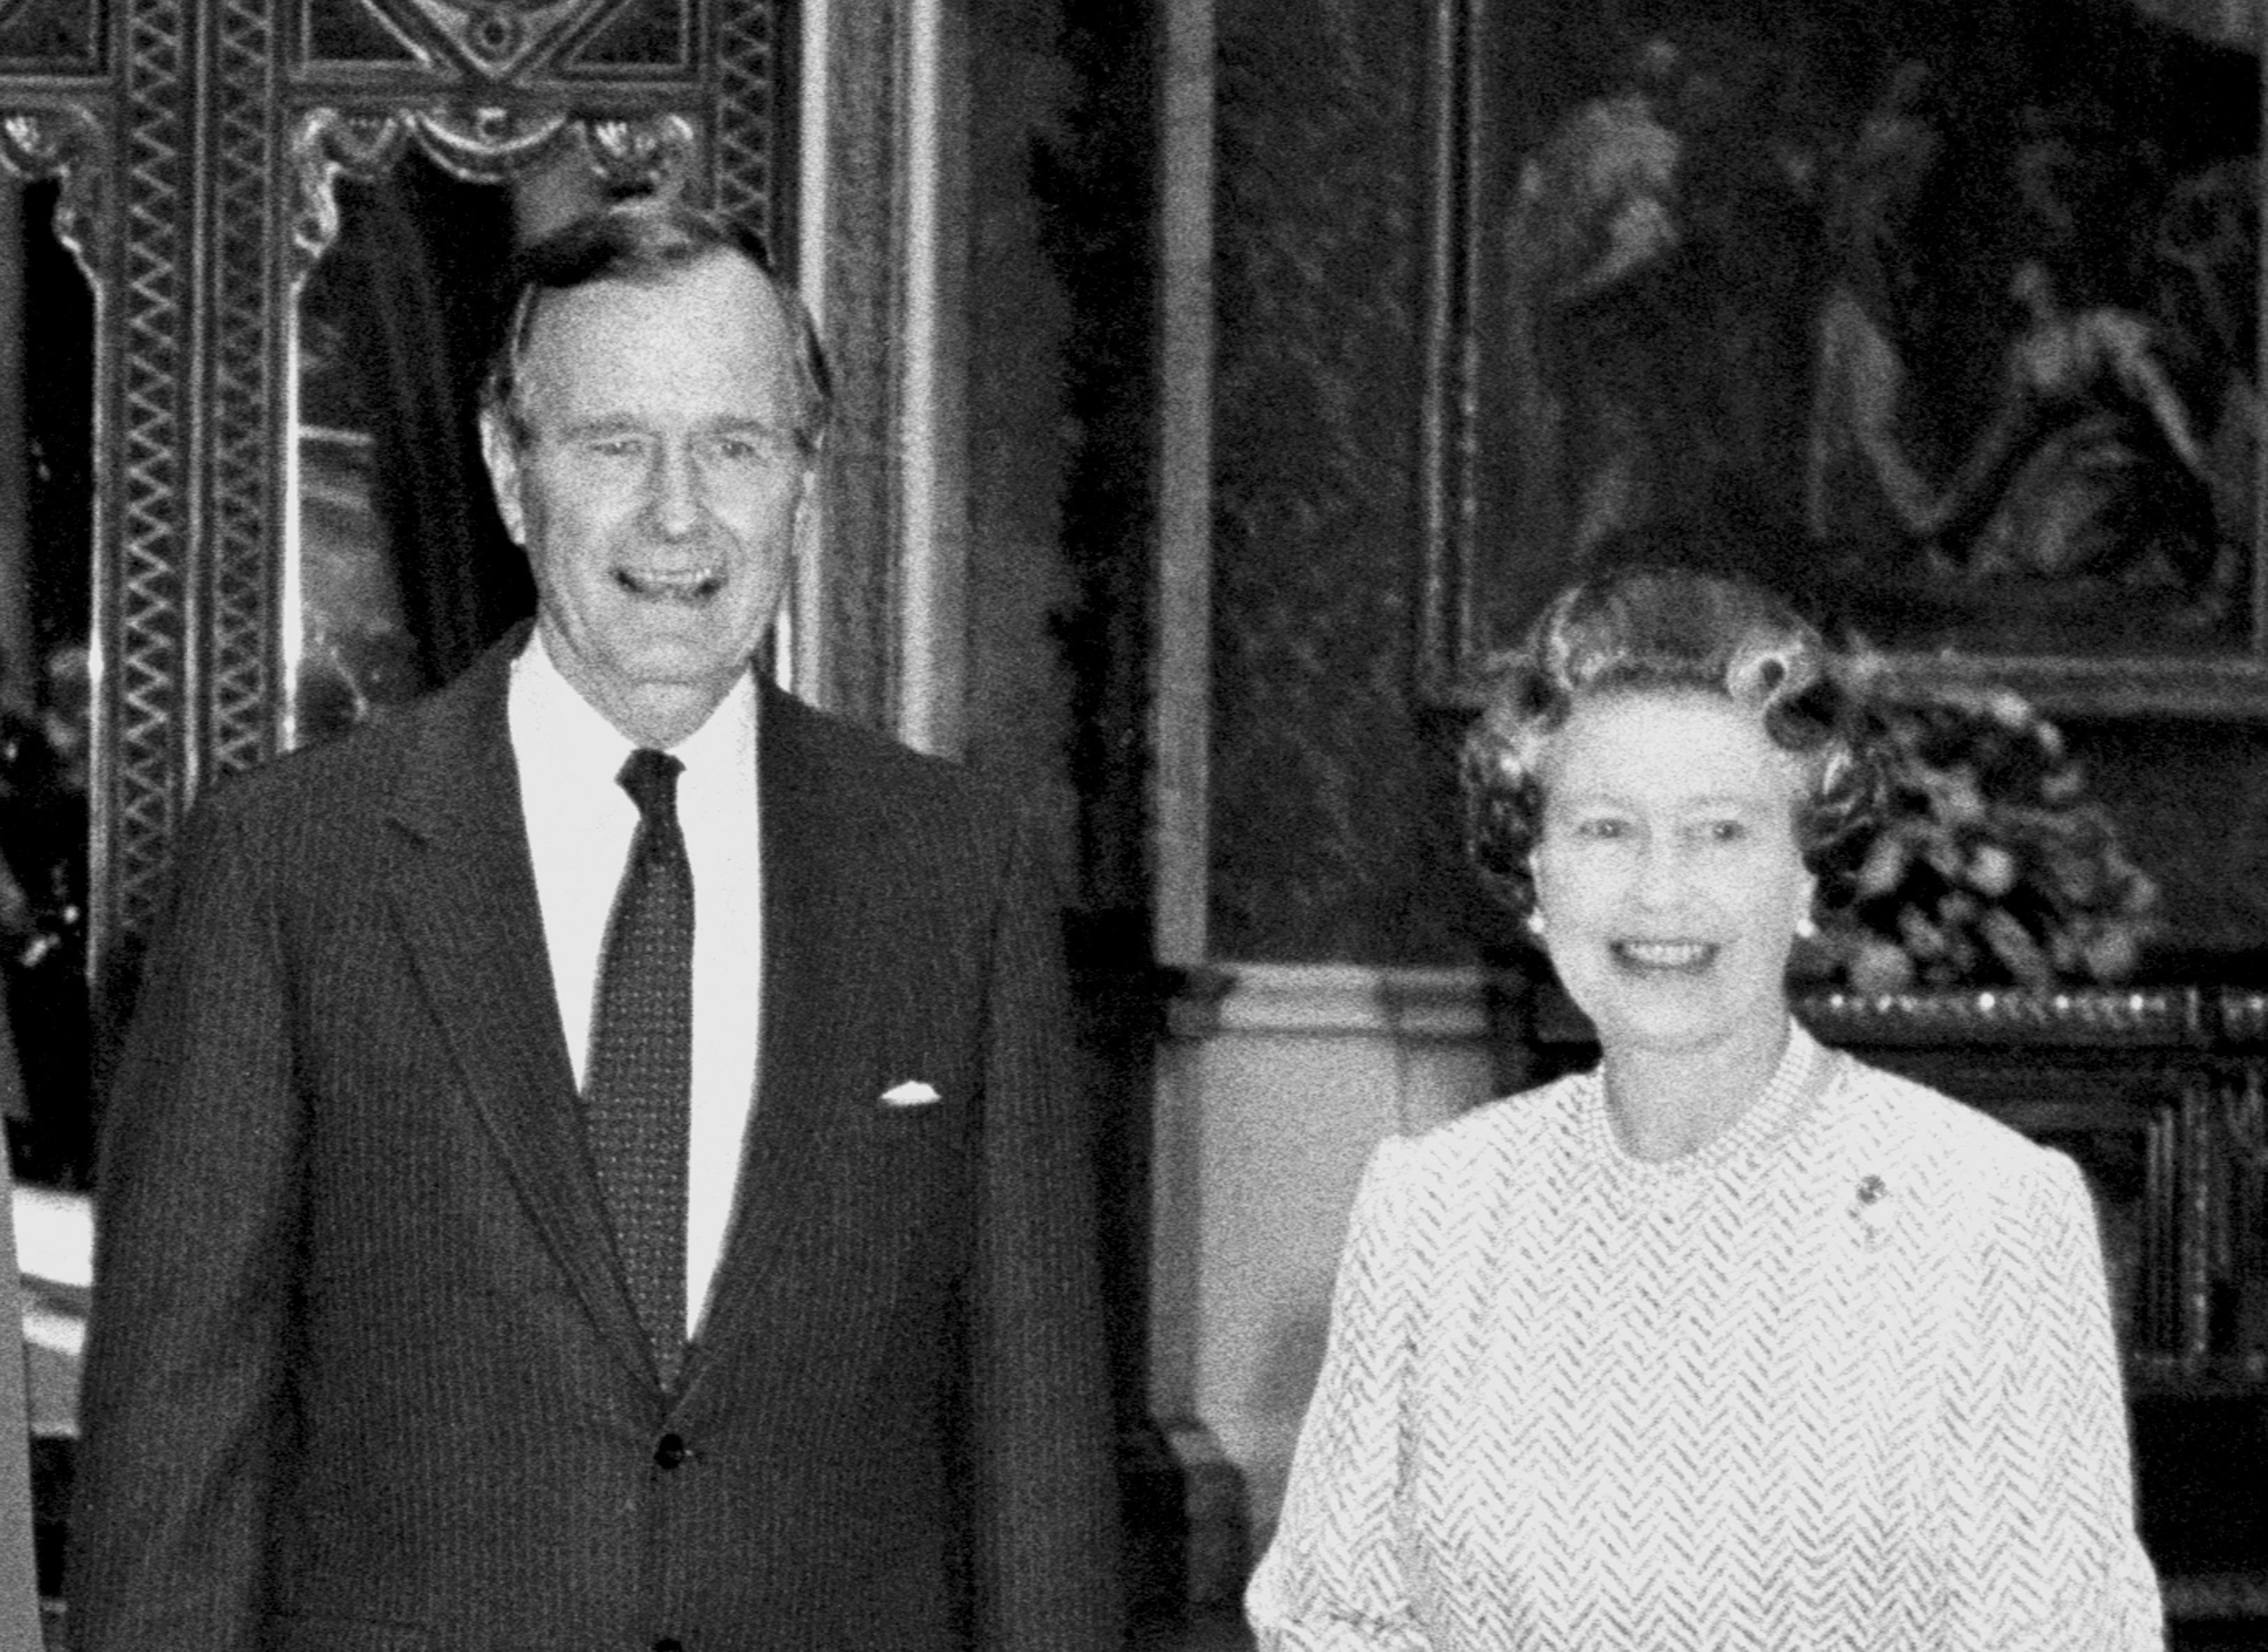 The Queen and George Bush Snr